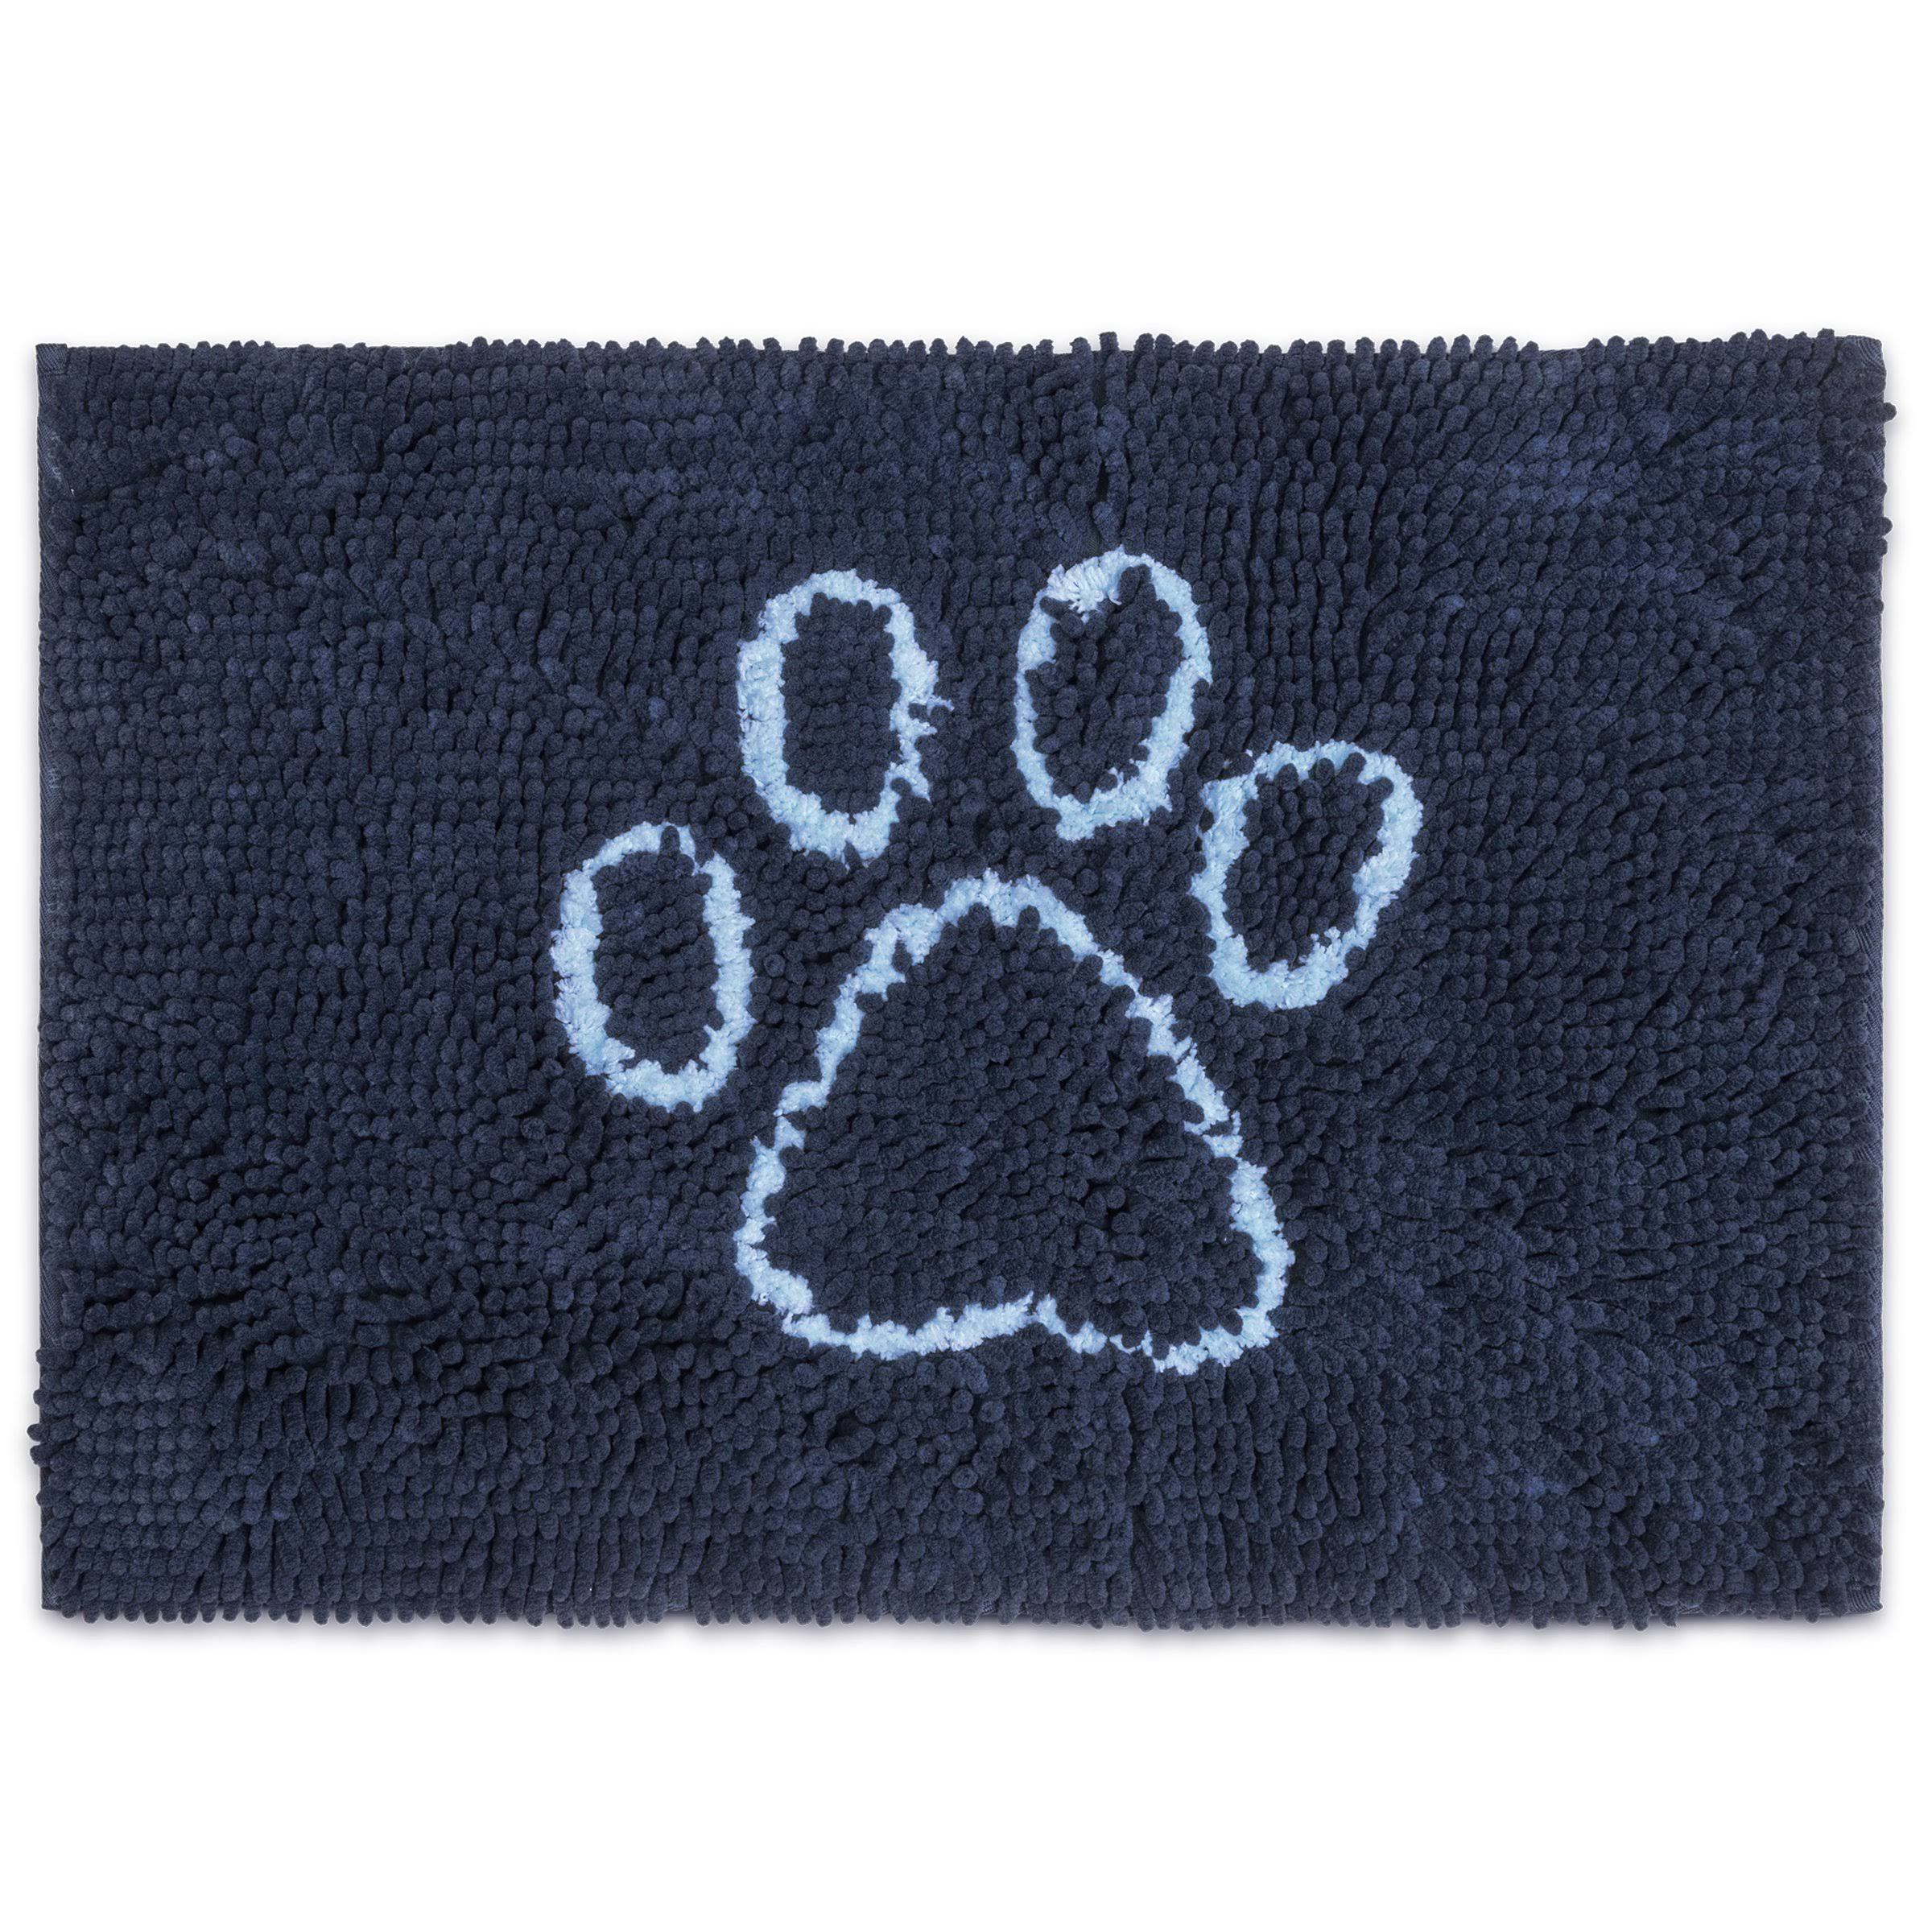 Dirty Dog Doormat - Bermuda Blue with Light Blue, Large